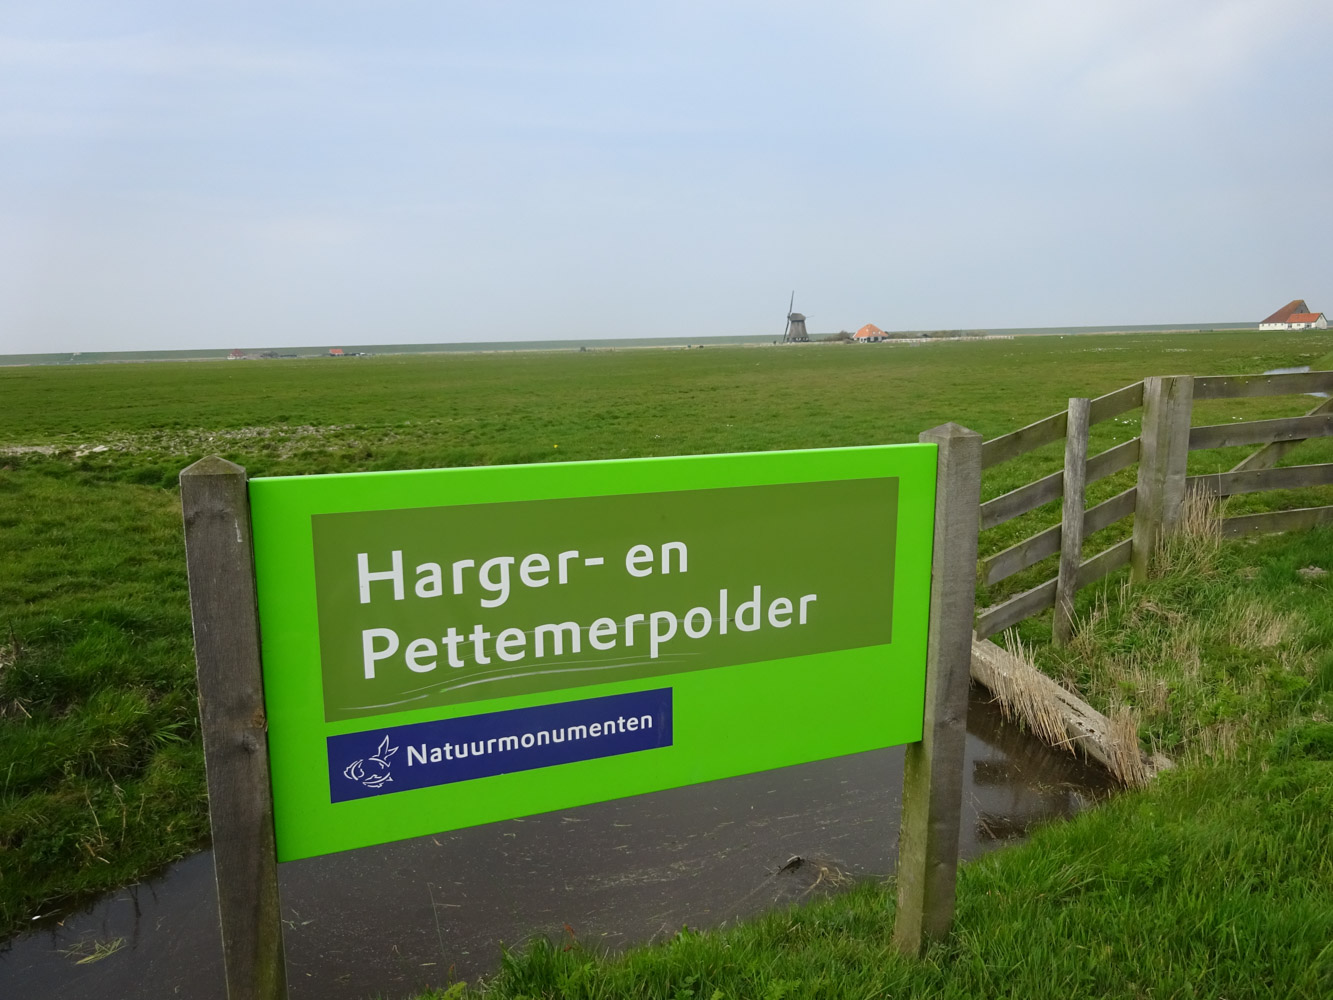 harger-pettemerpolder